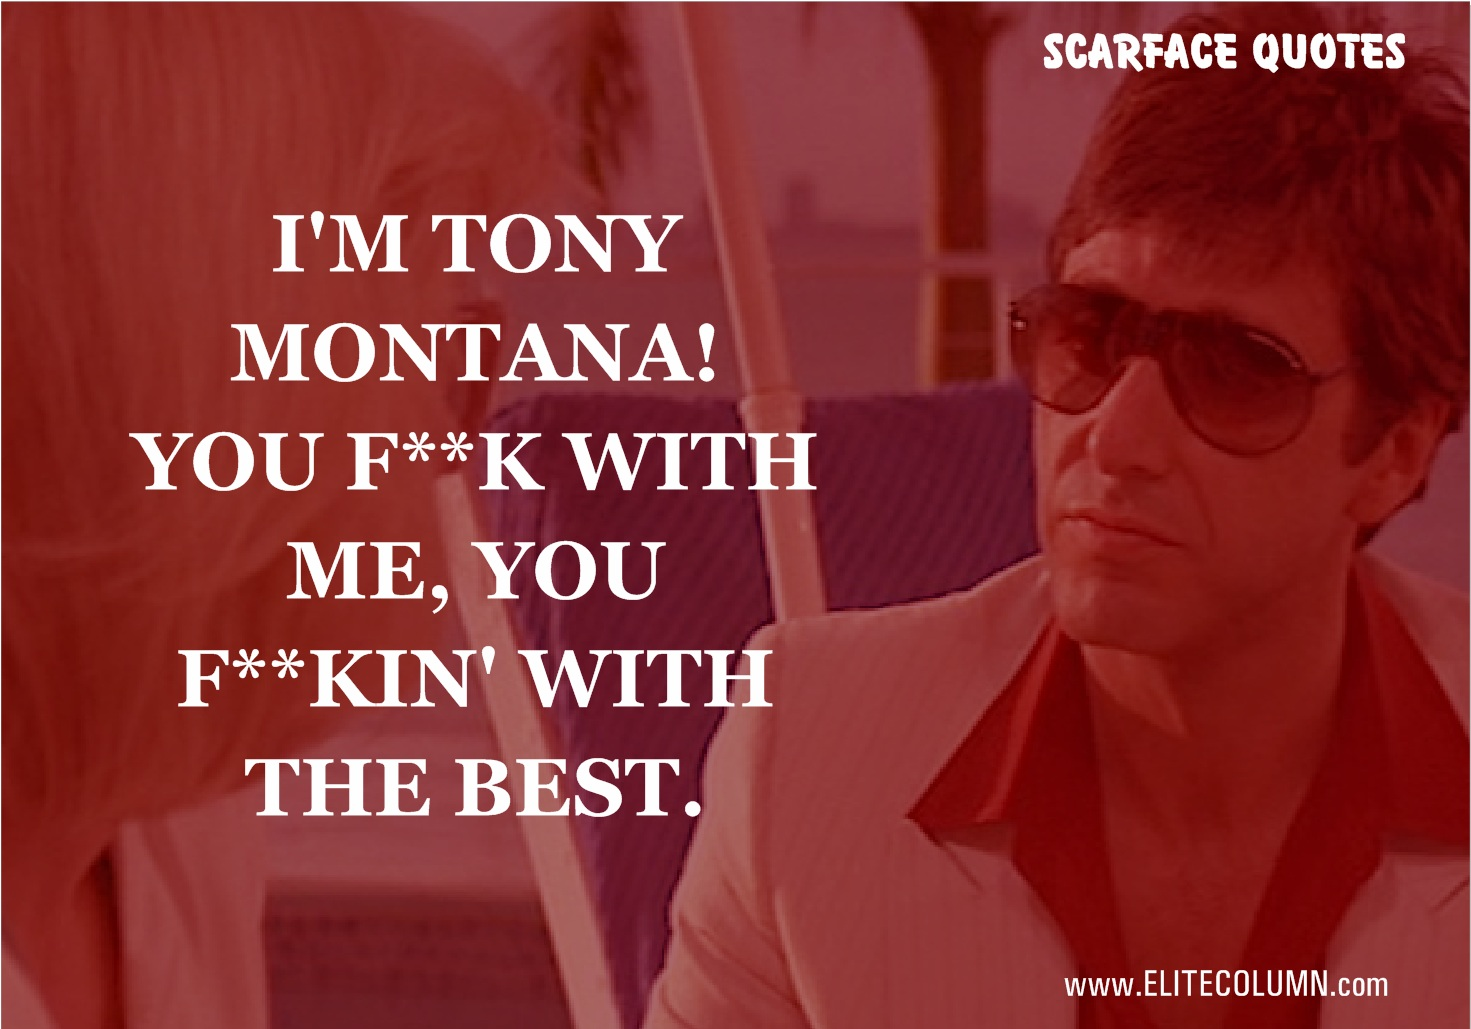 Scarface Quotes (3)